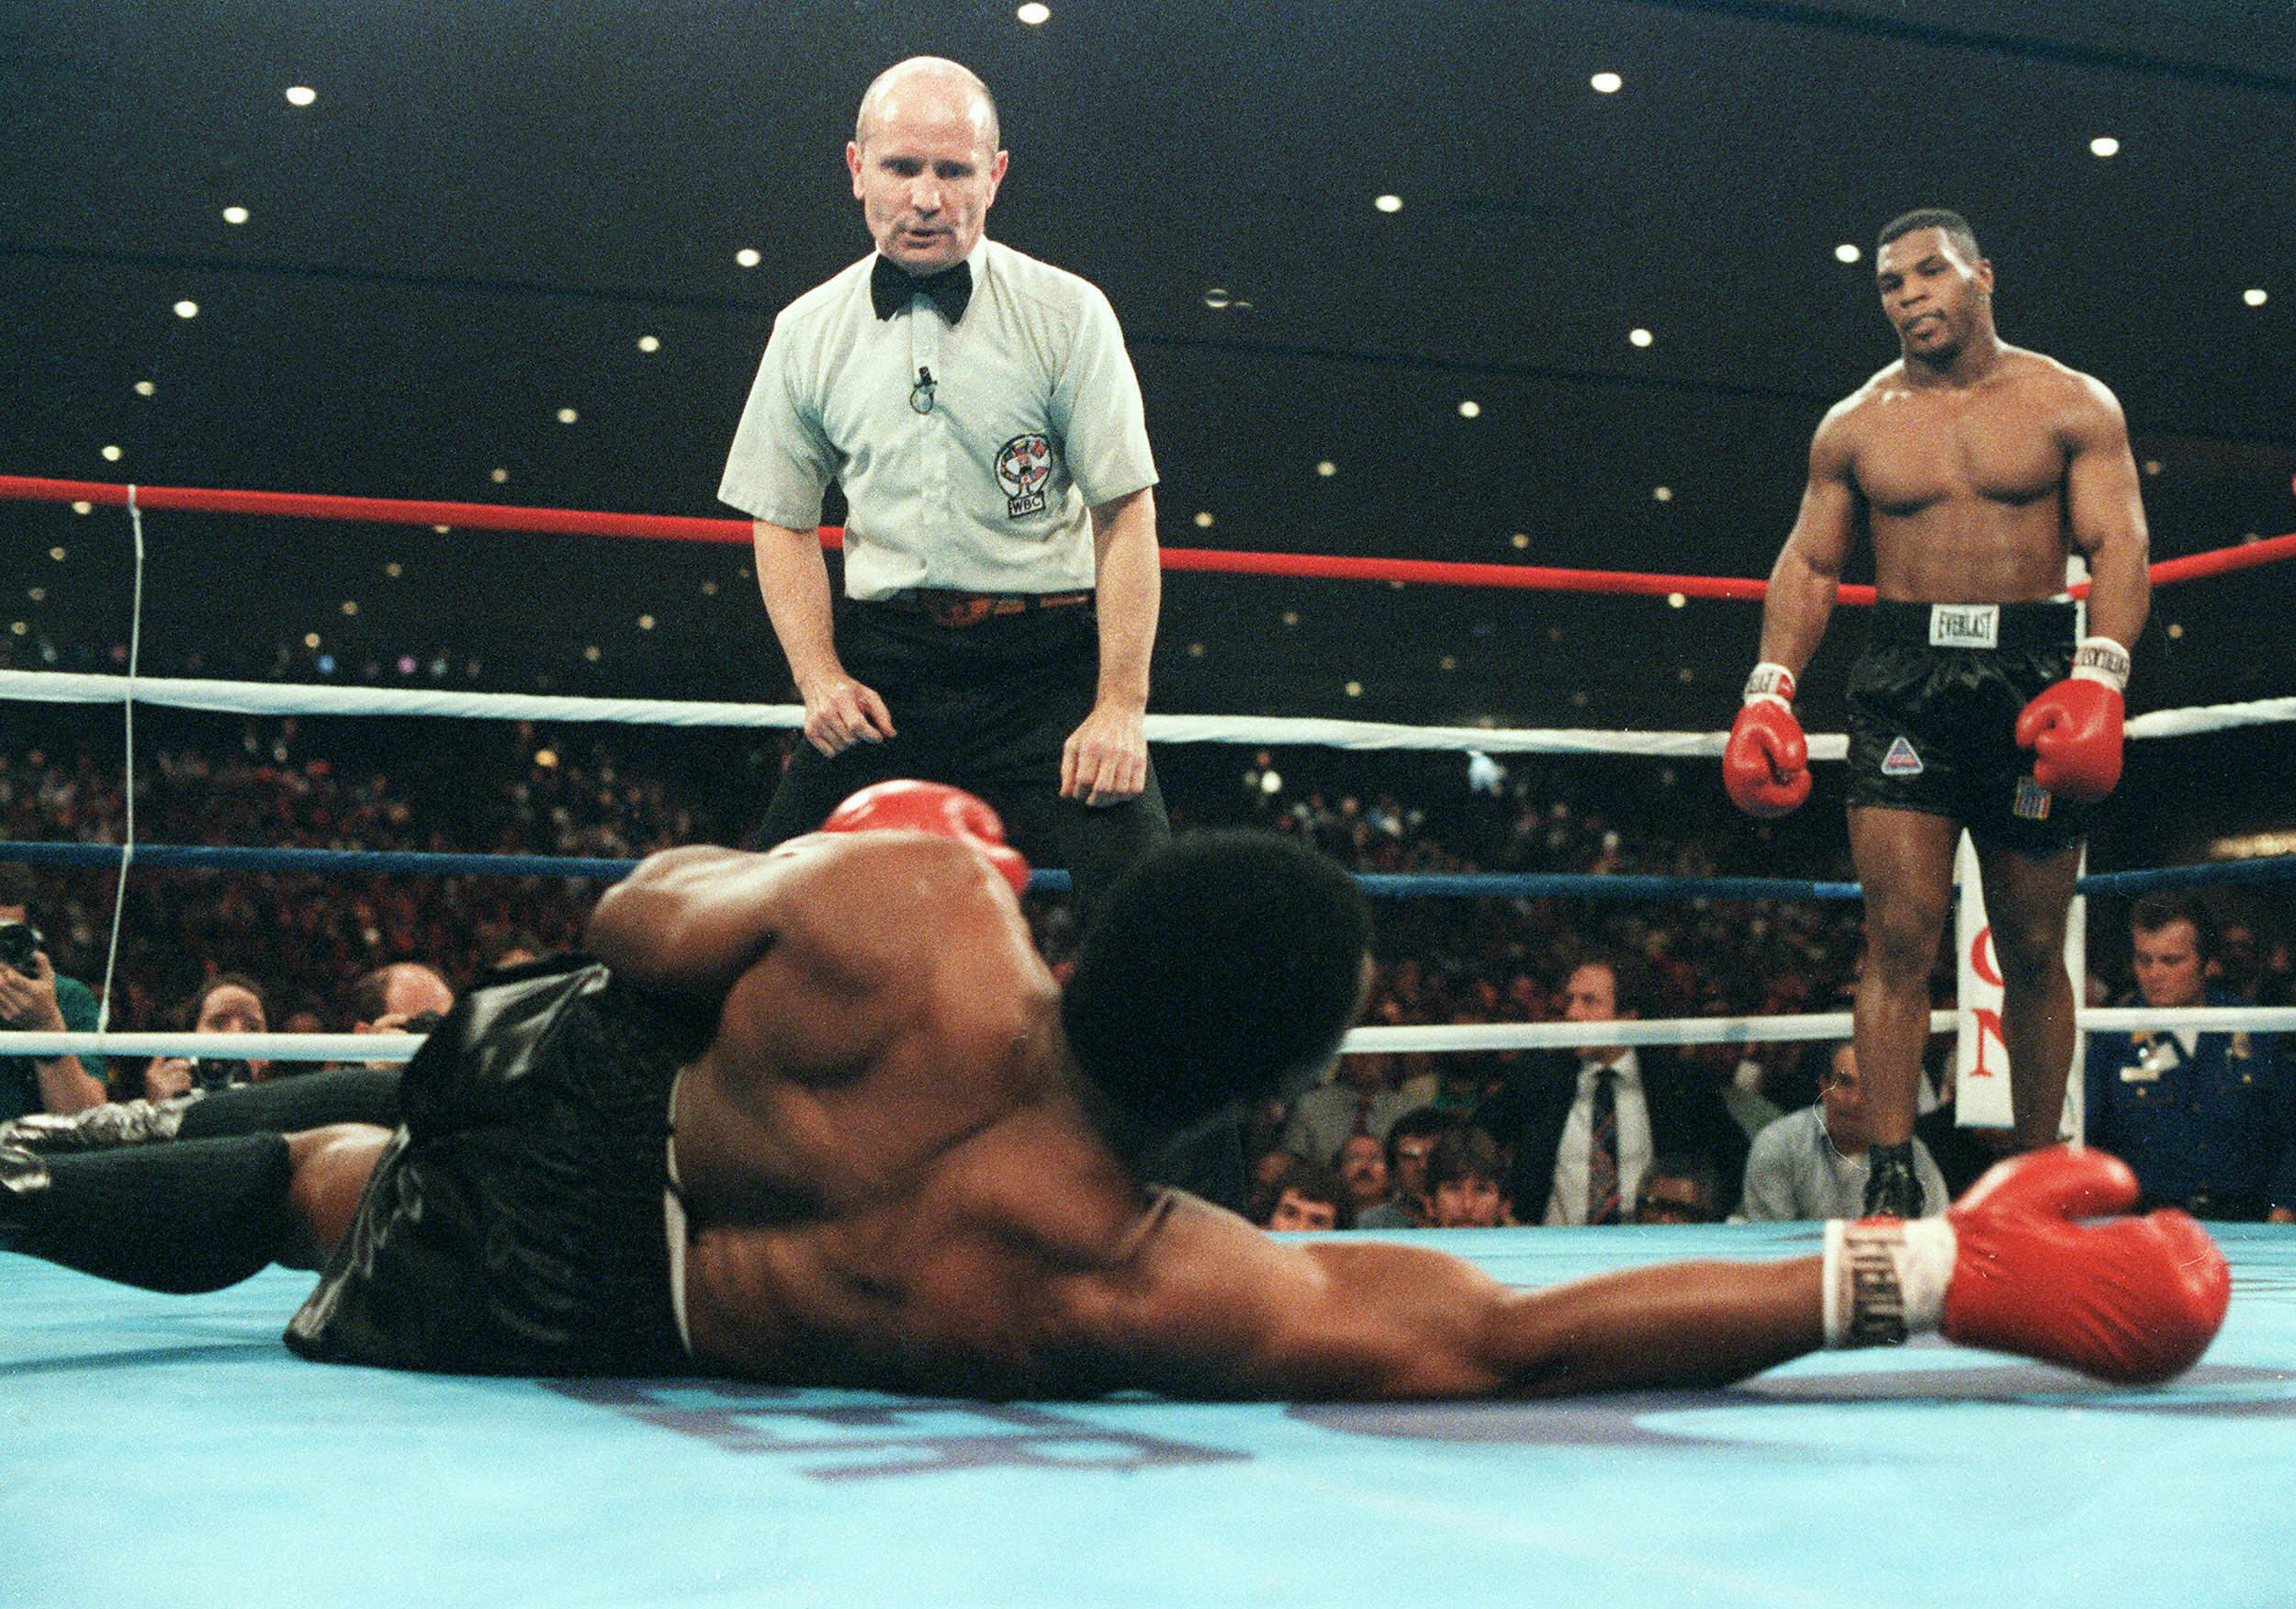 Mike Tyson watches Trevor Berbick lay on the ground during a fight